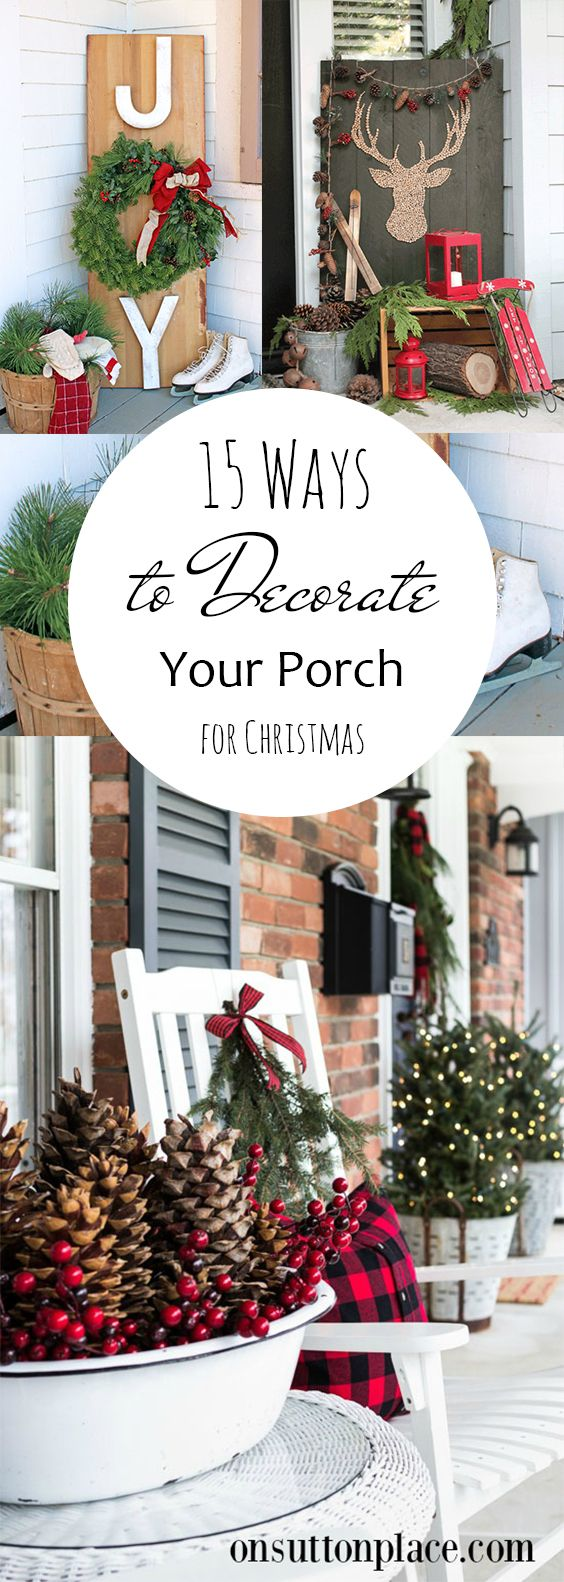 15 Ways to Decorate Your Porch for